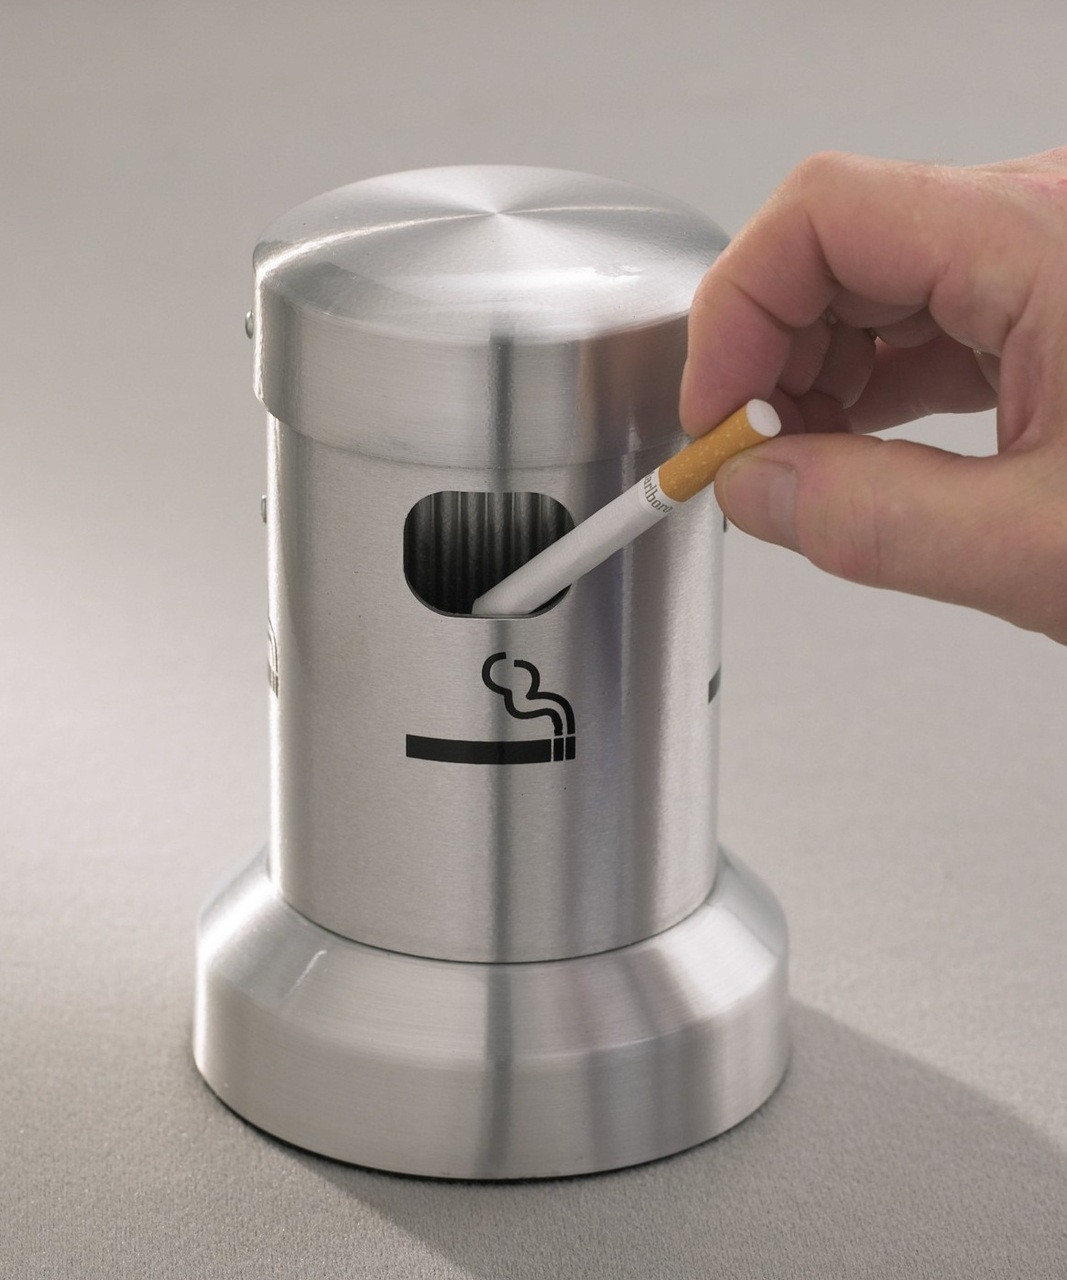 Ash tray in use